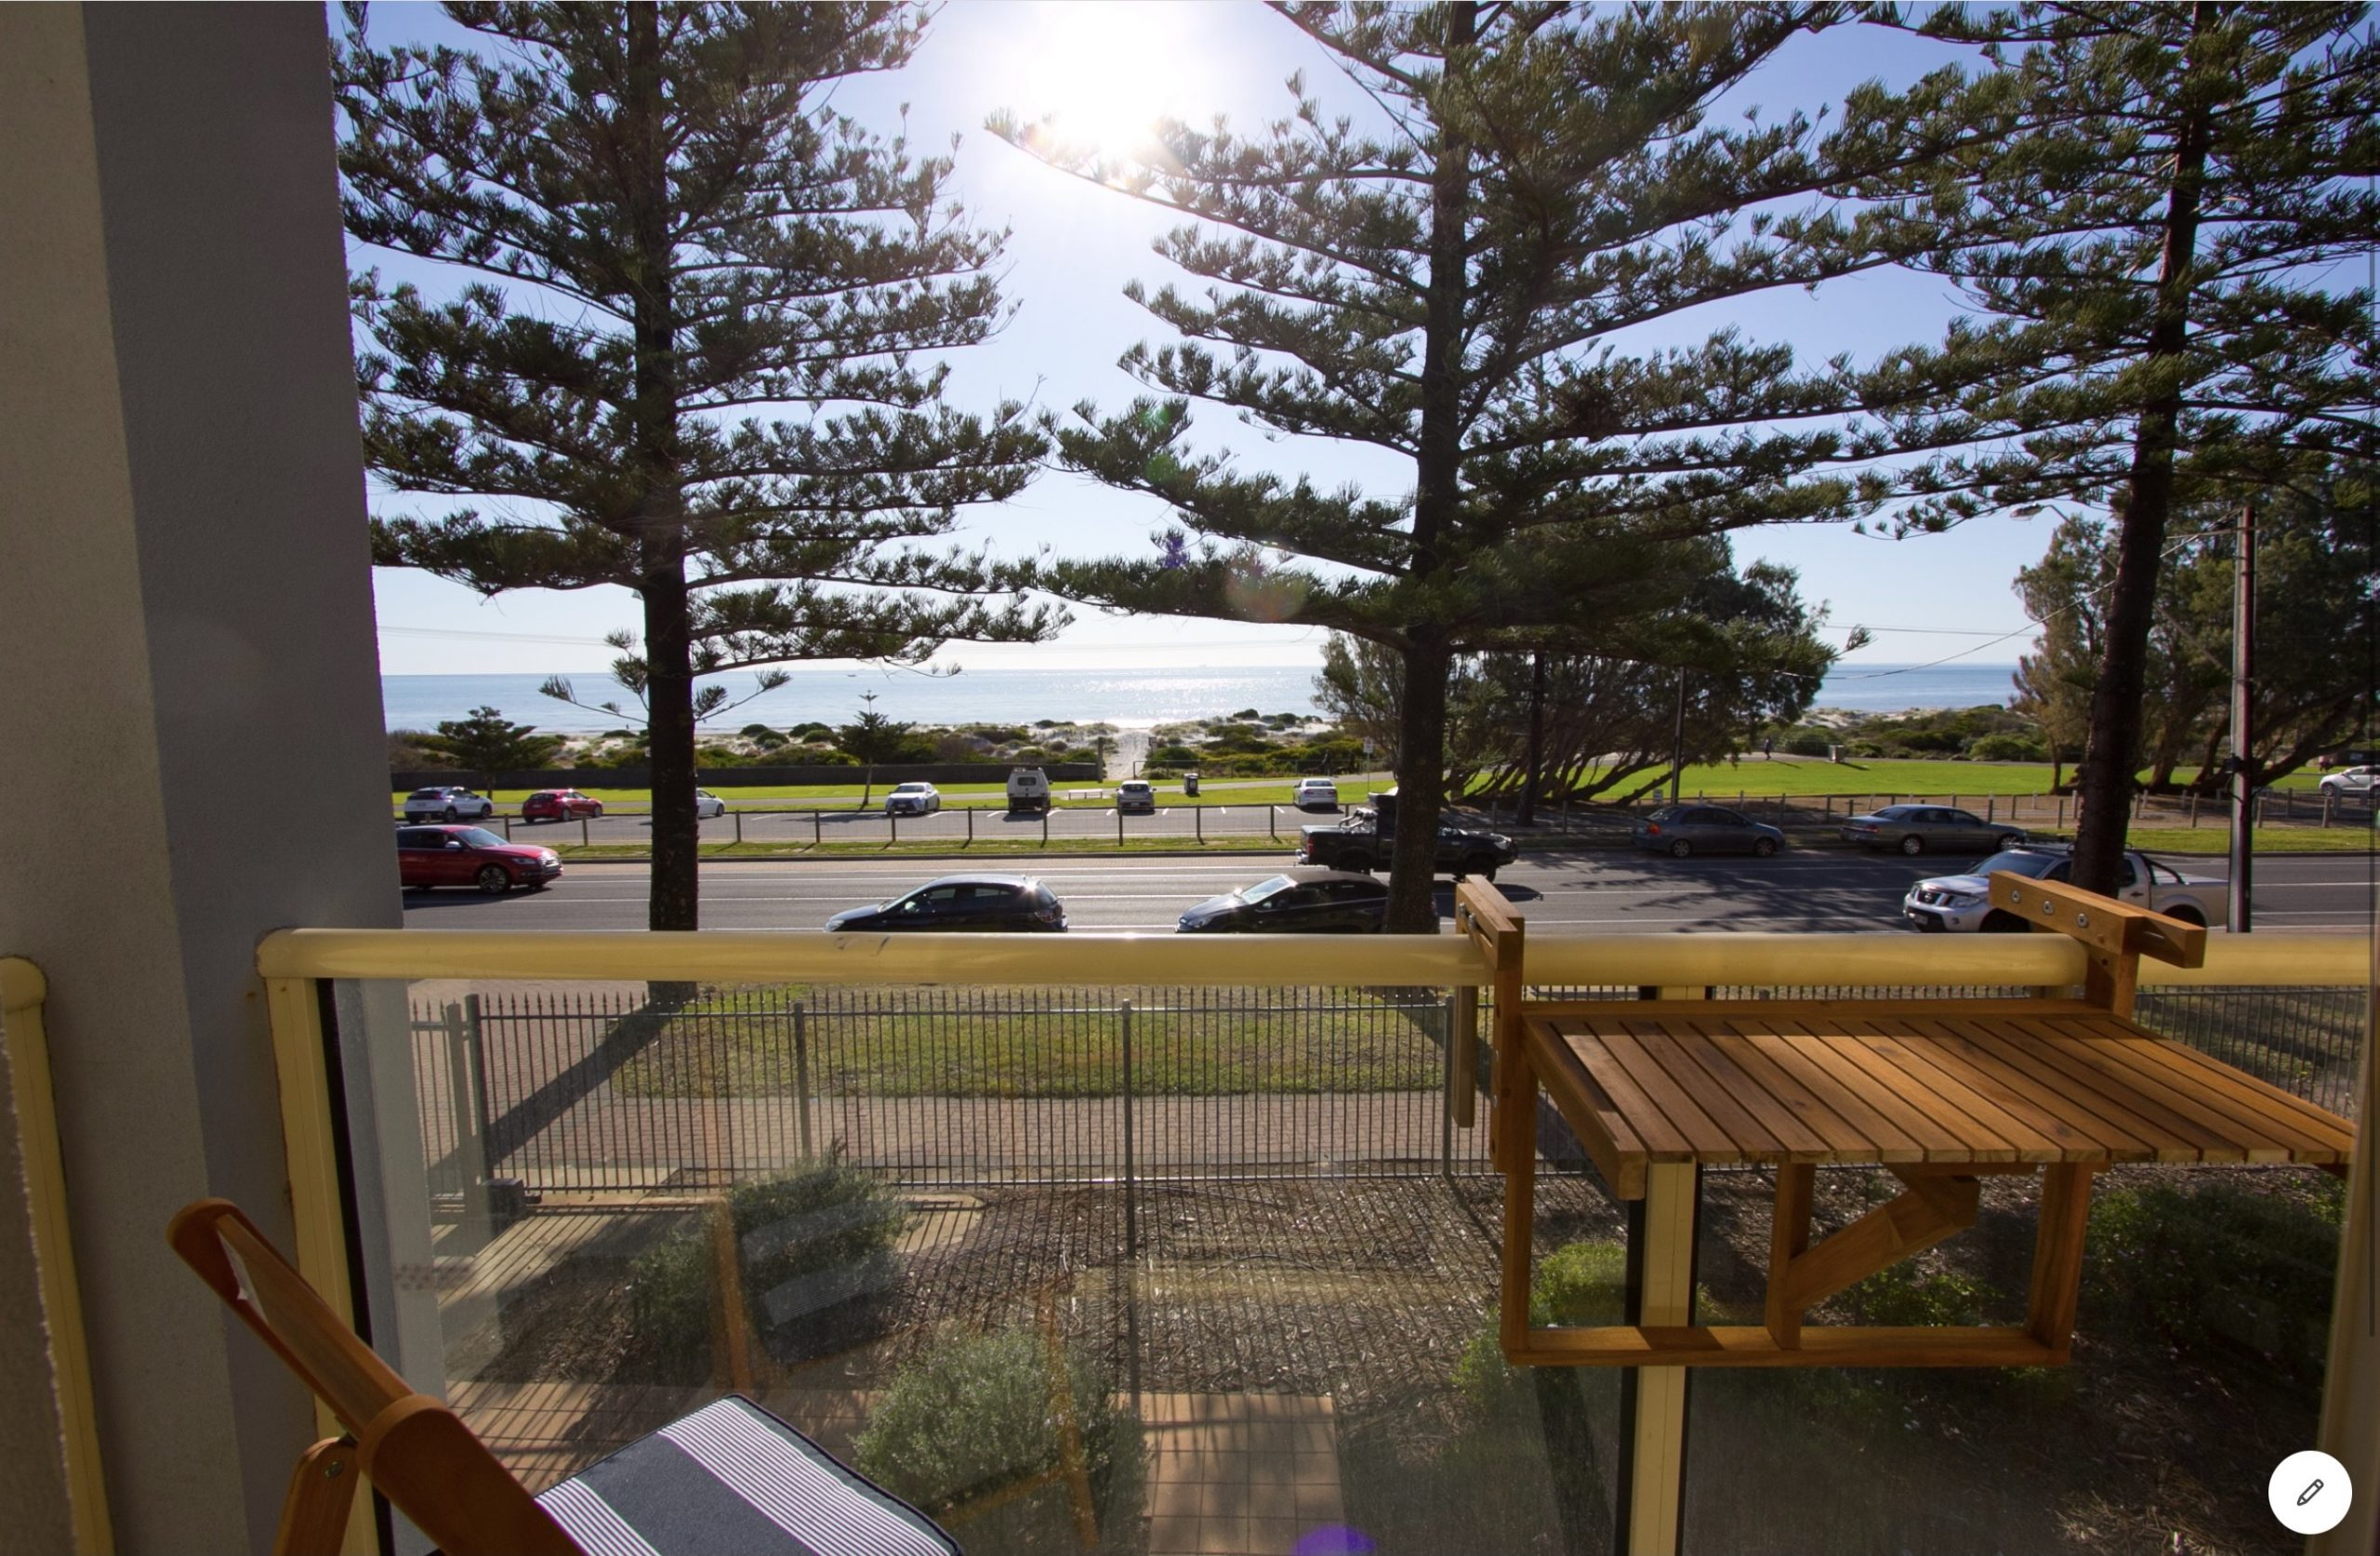 Book your next Staycation at Esplanade Semaphore!